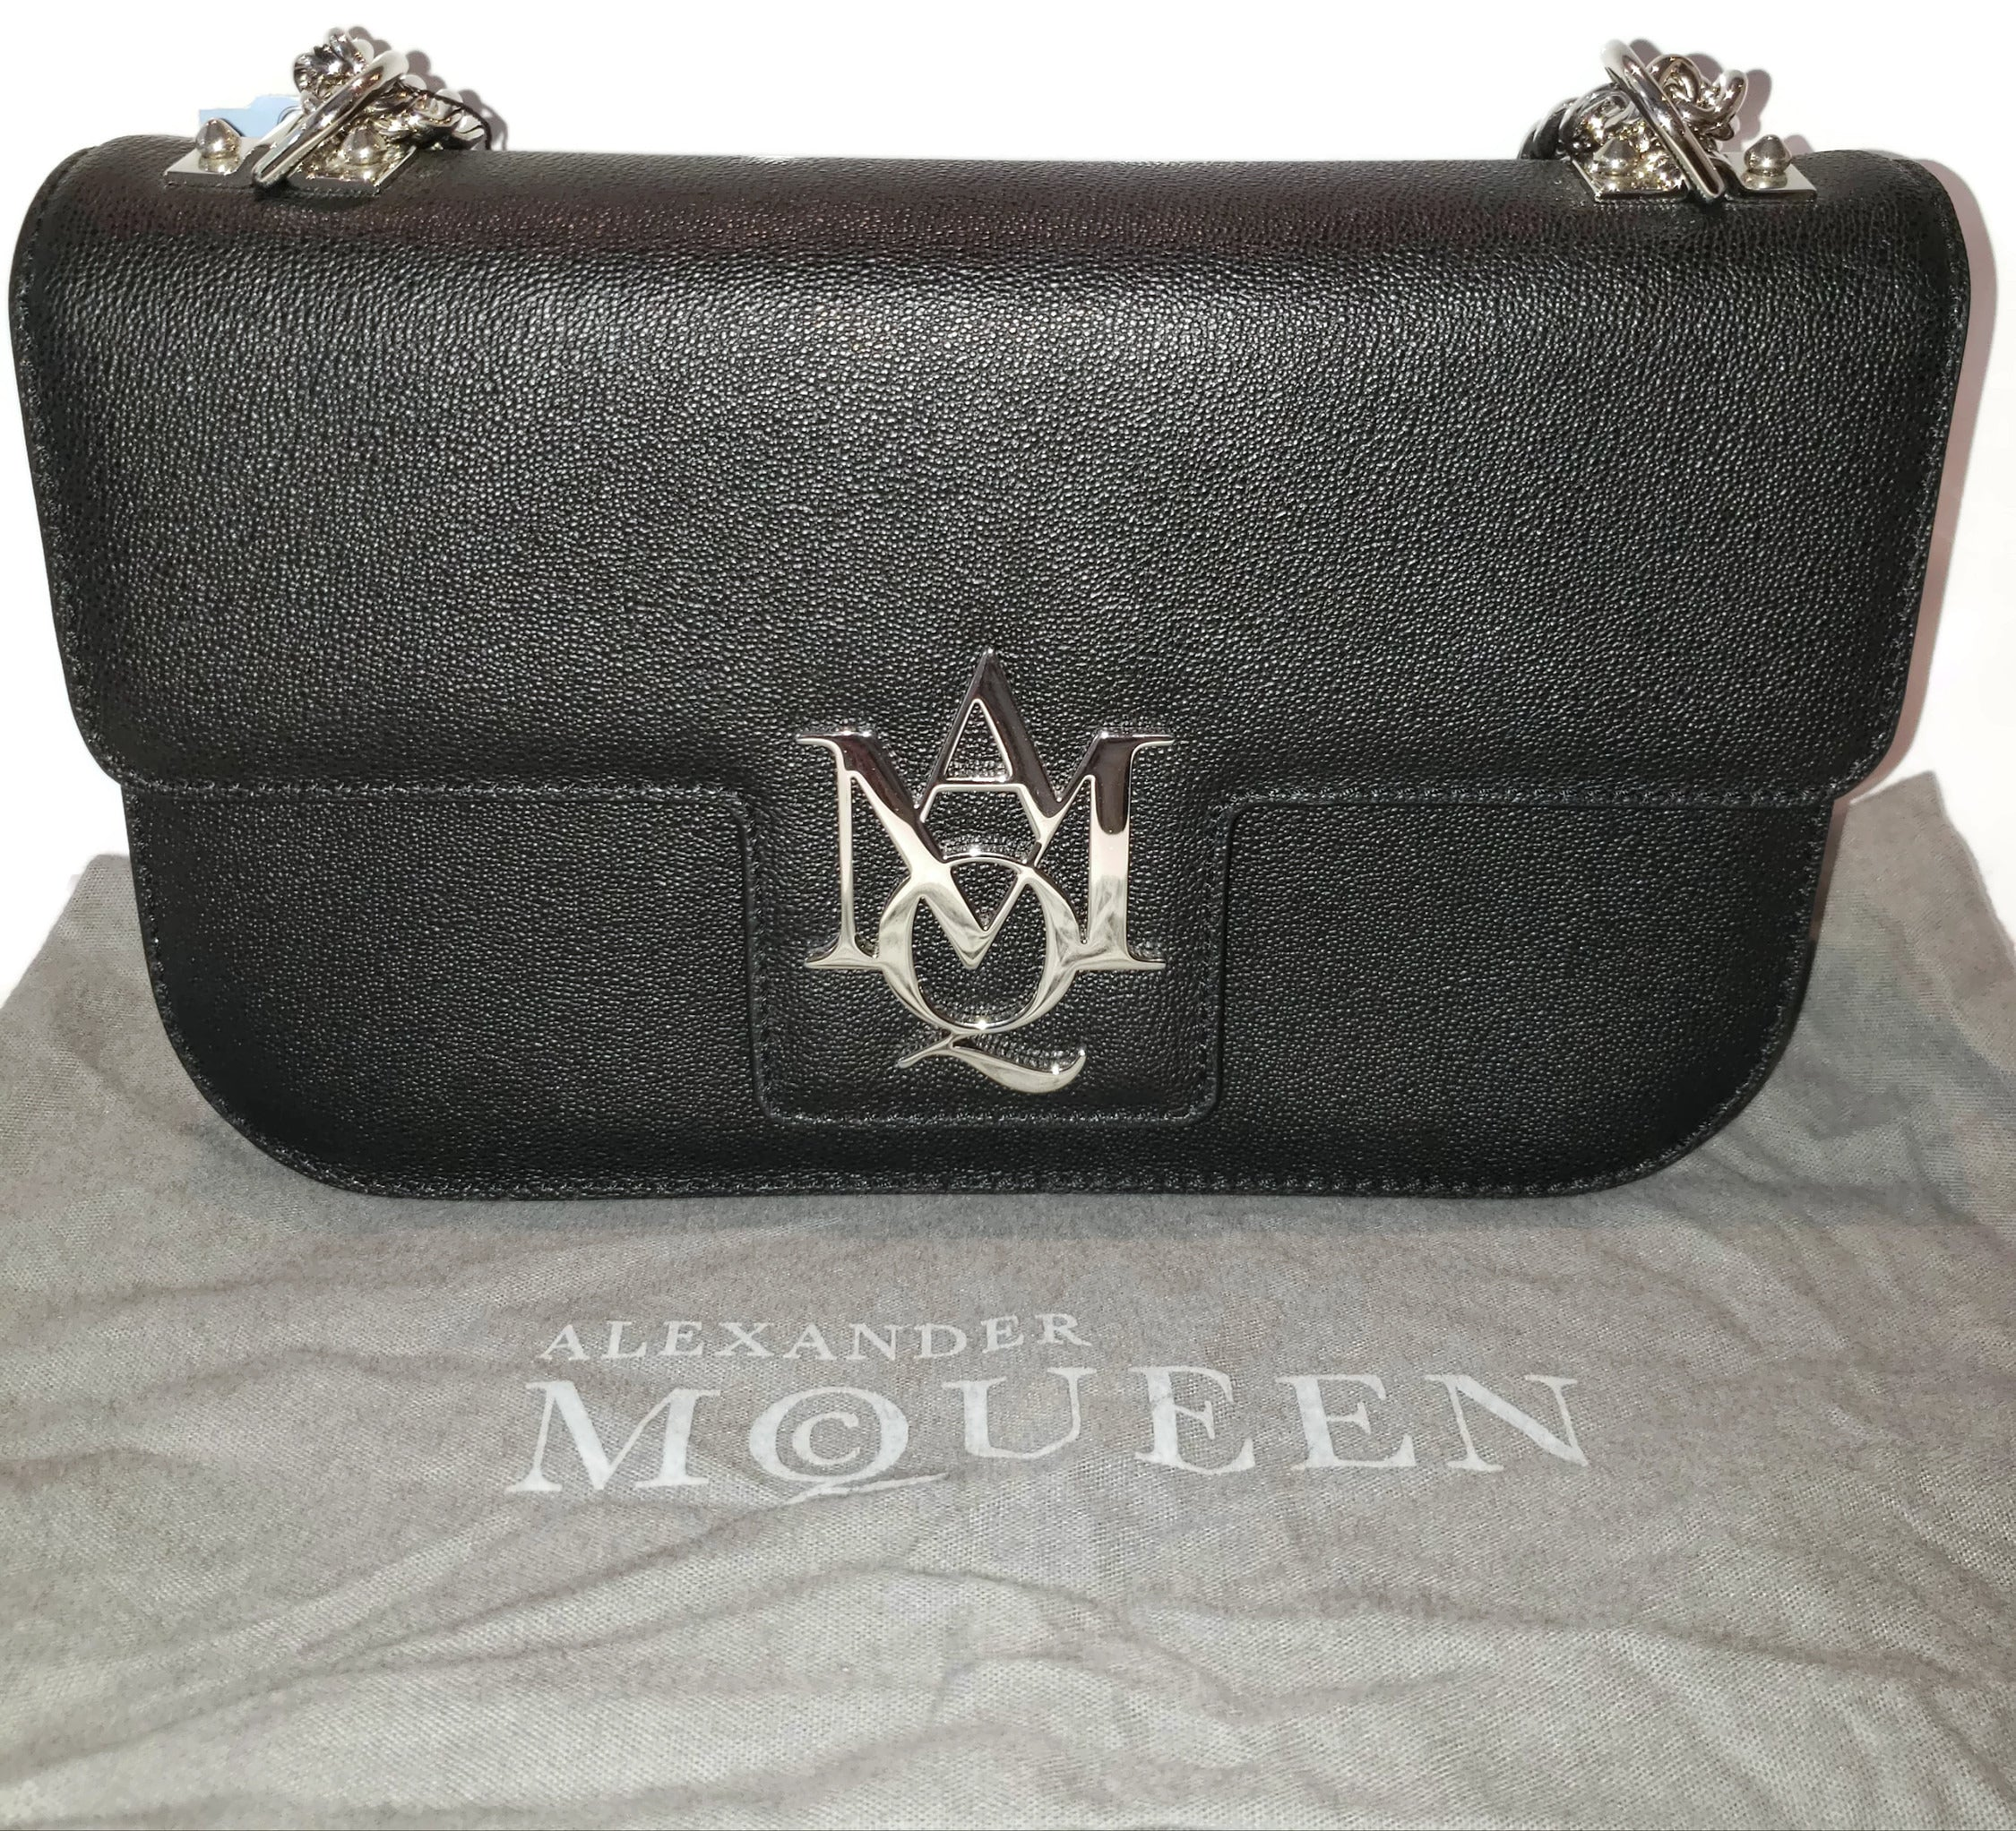 Alexander McQueen Insignia Small Chain Black Leather Shoulder Bag